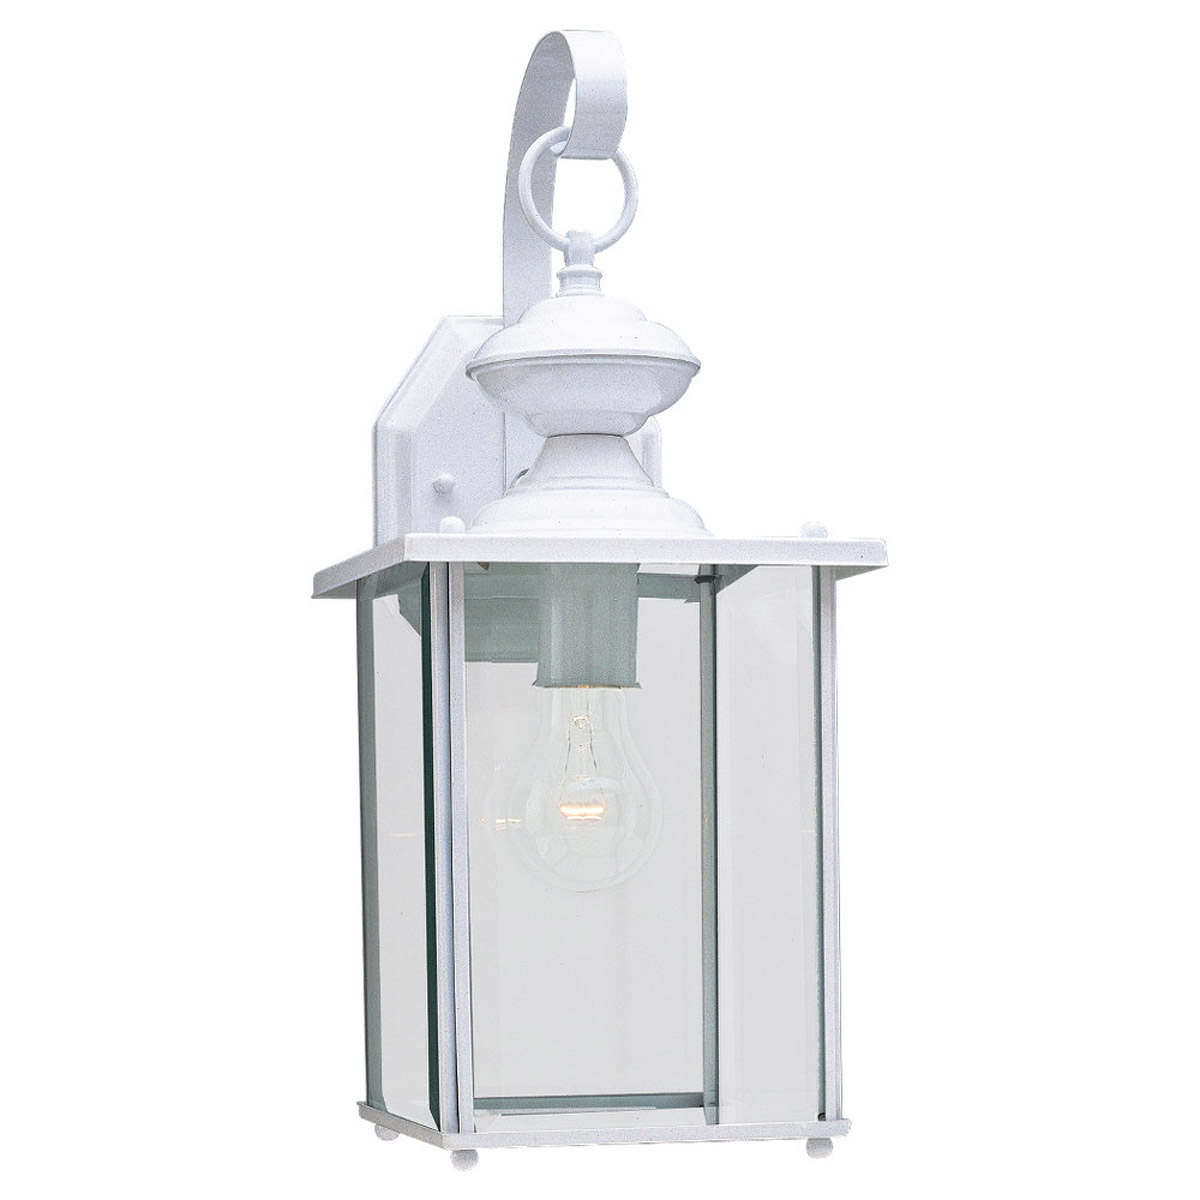 Sea Gull Lighting Jamestowne 1 Light Outdoor Wall Lantern in White 8458-15 photo